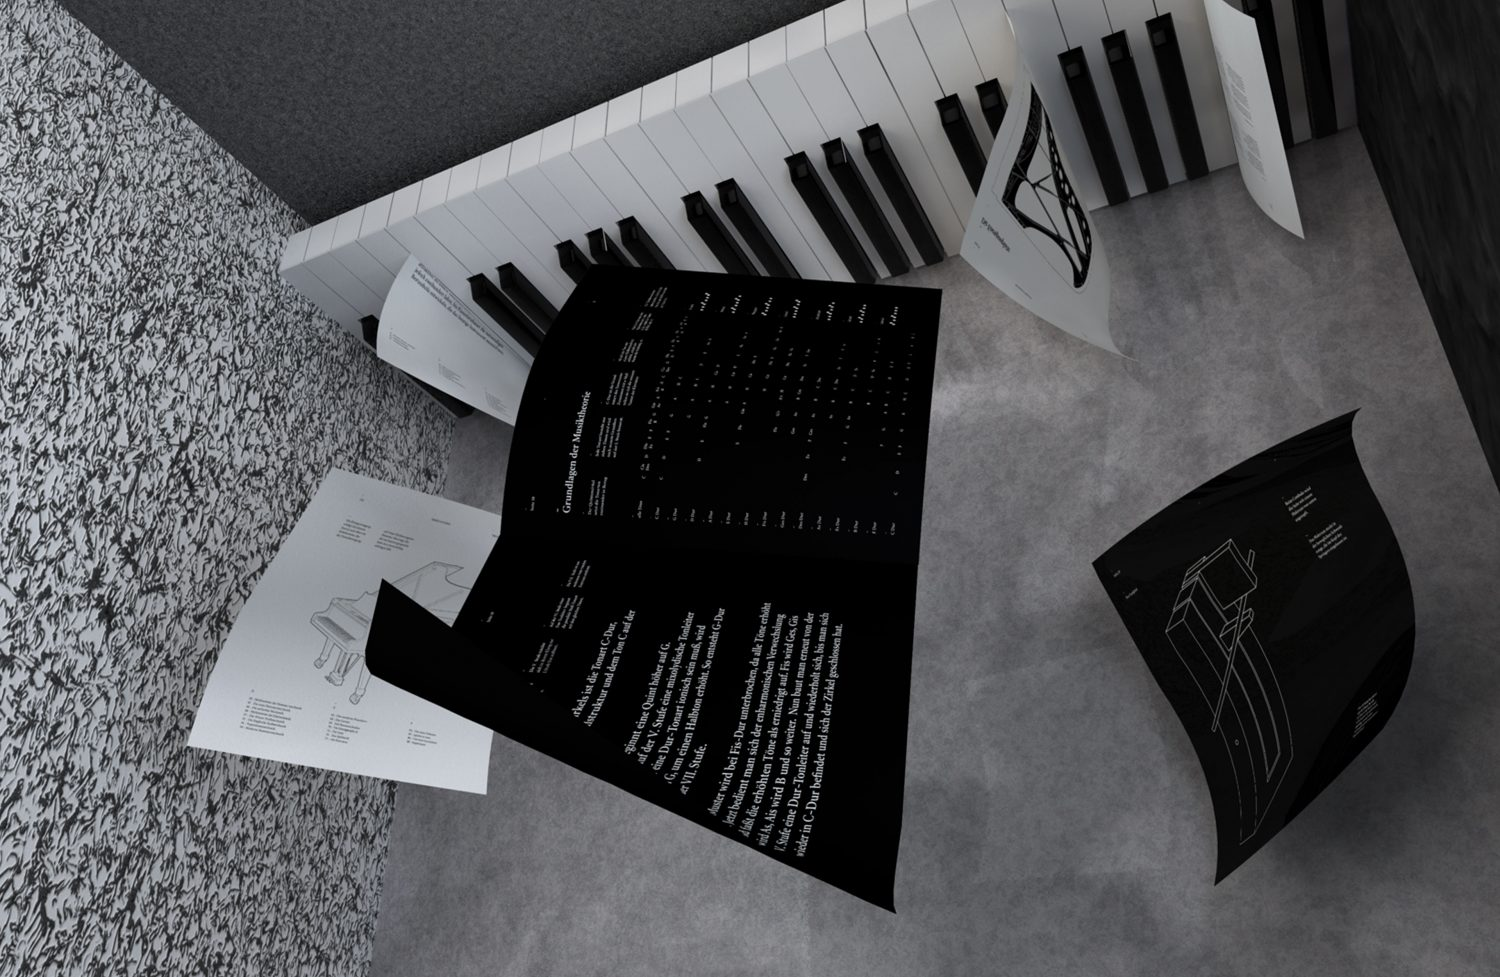 Pianoforte — 88 pages in black and white Call for Creatives